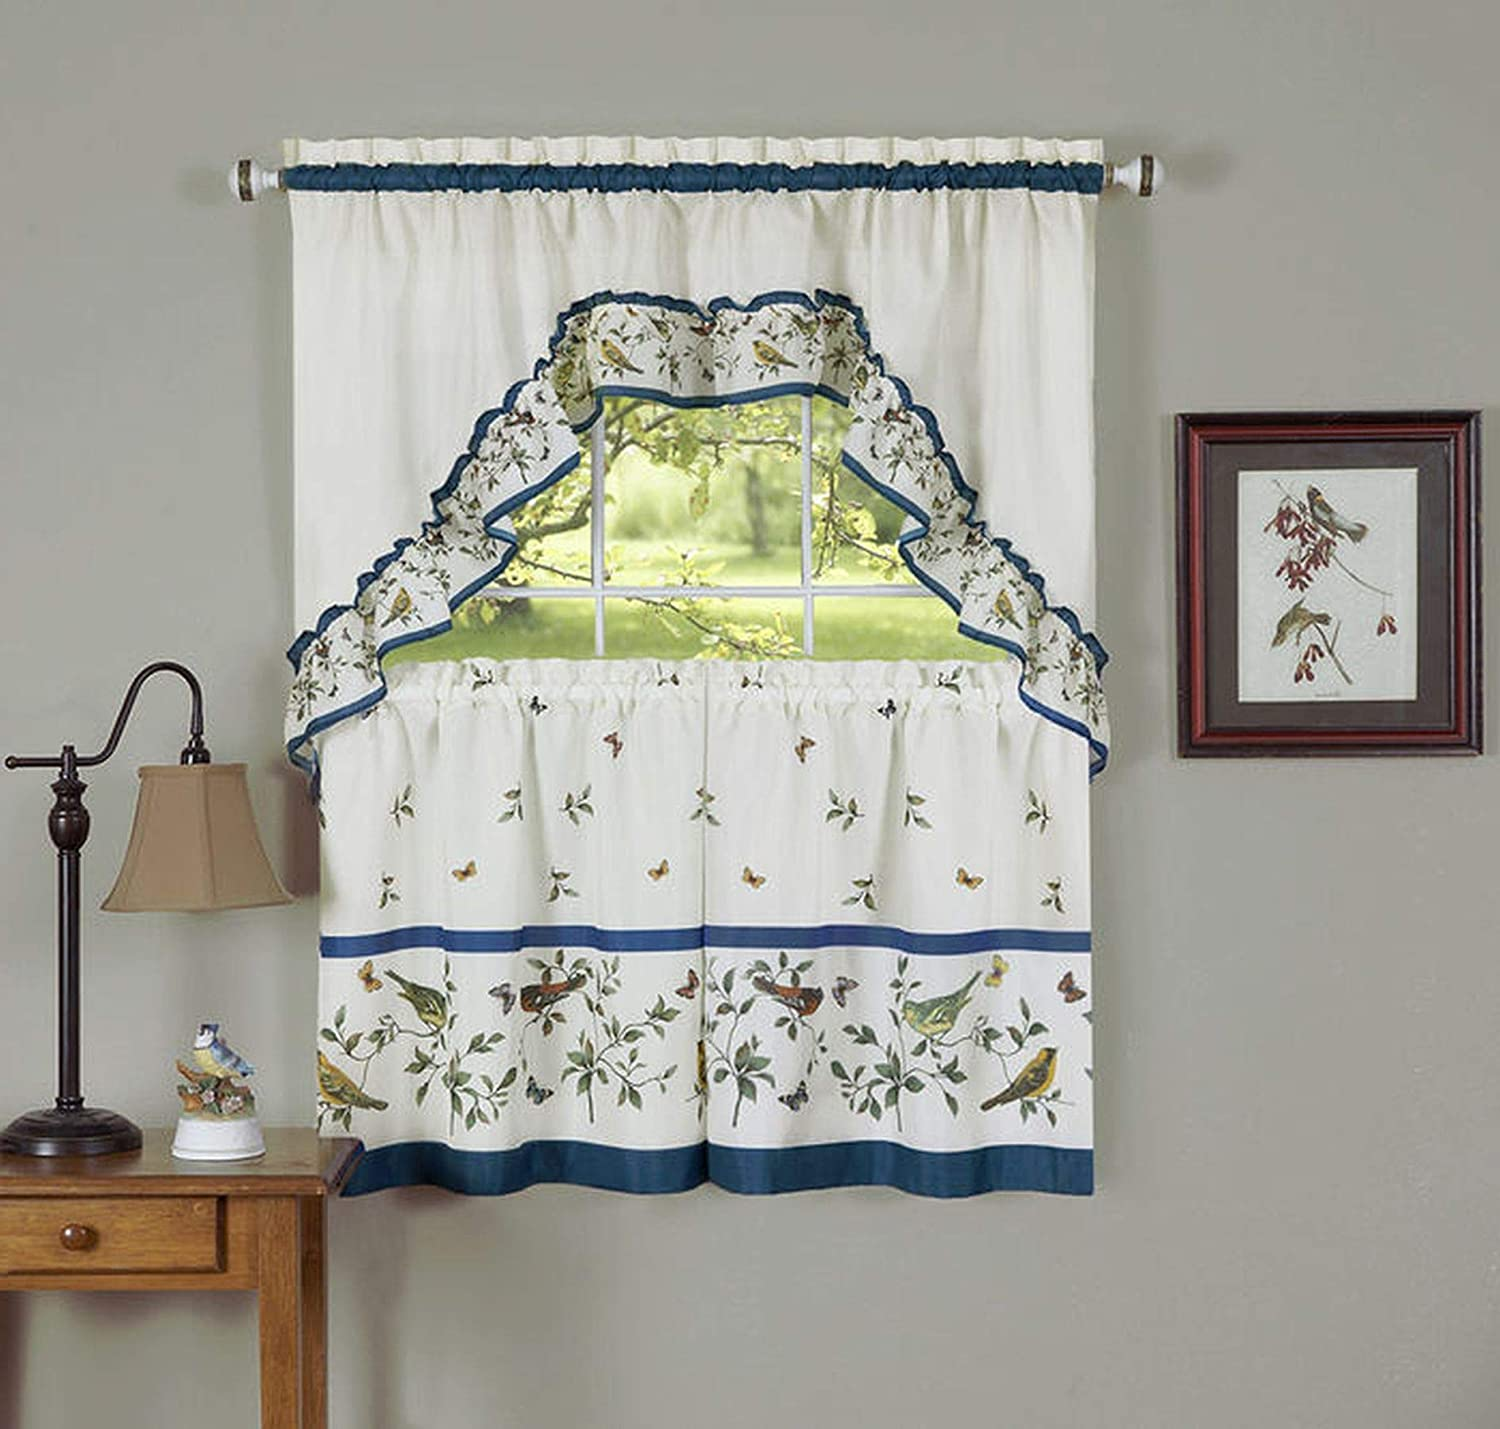 BenJonah PrimeHome Collection Love Birds Printed Max Over item handling 63% OFF and Swa - Tier